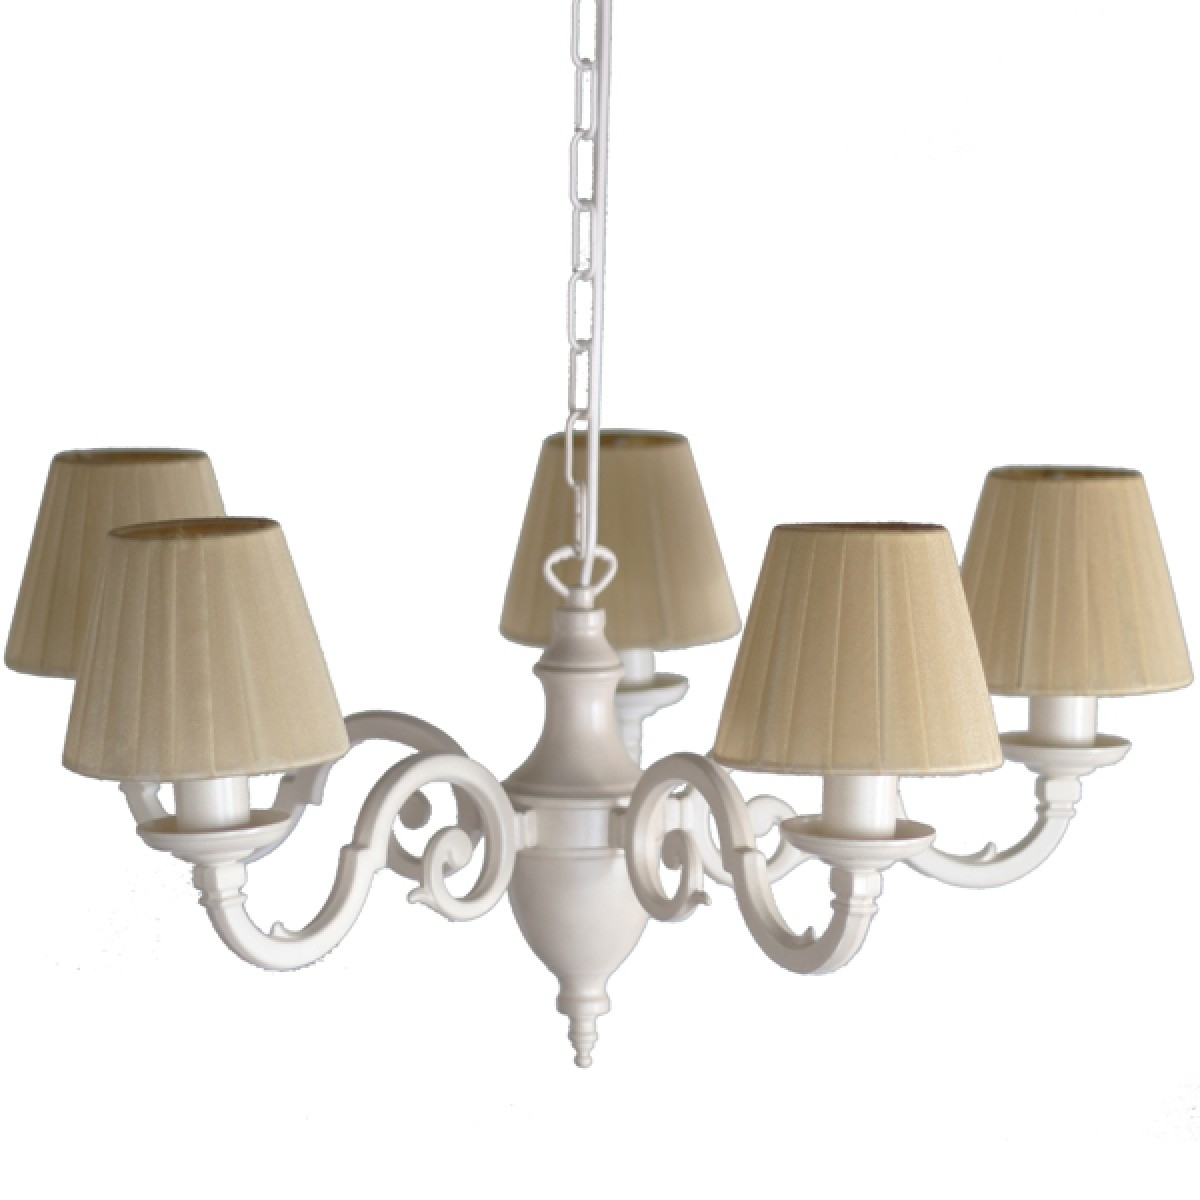 Most Up To Date Bedroom Light Fitting Chandelier Throughout Cream Chandelier Lights (View 9 of 20)